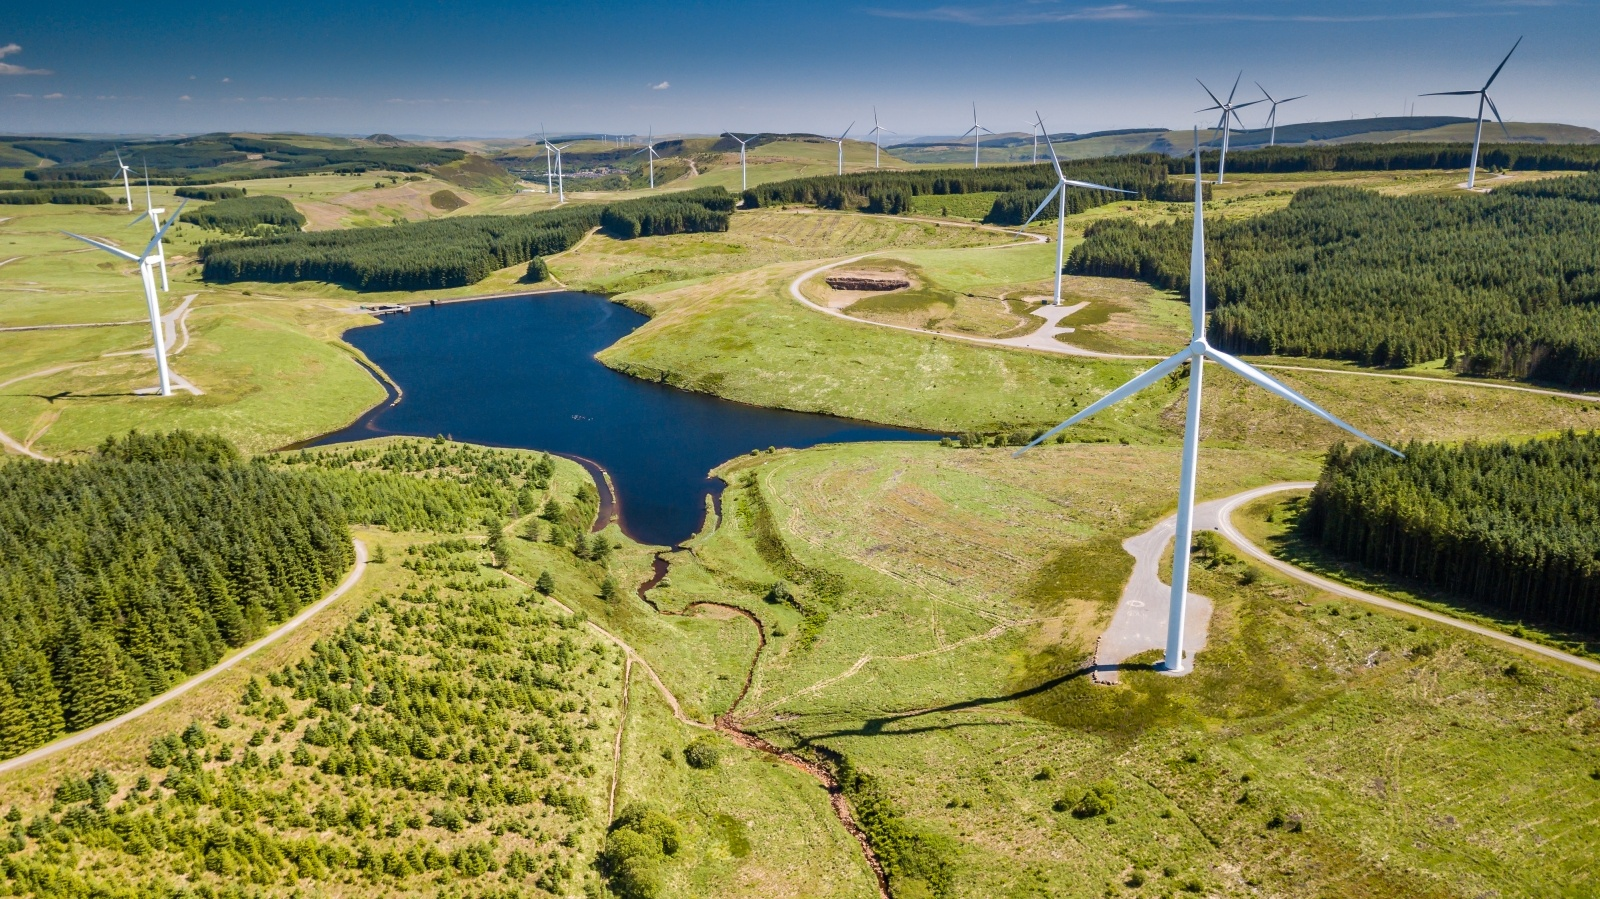 Wind turbines as source of green energy